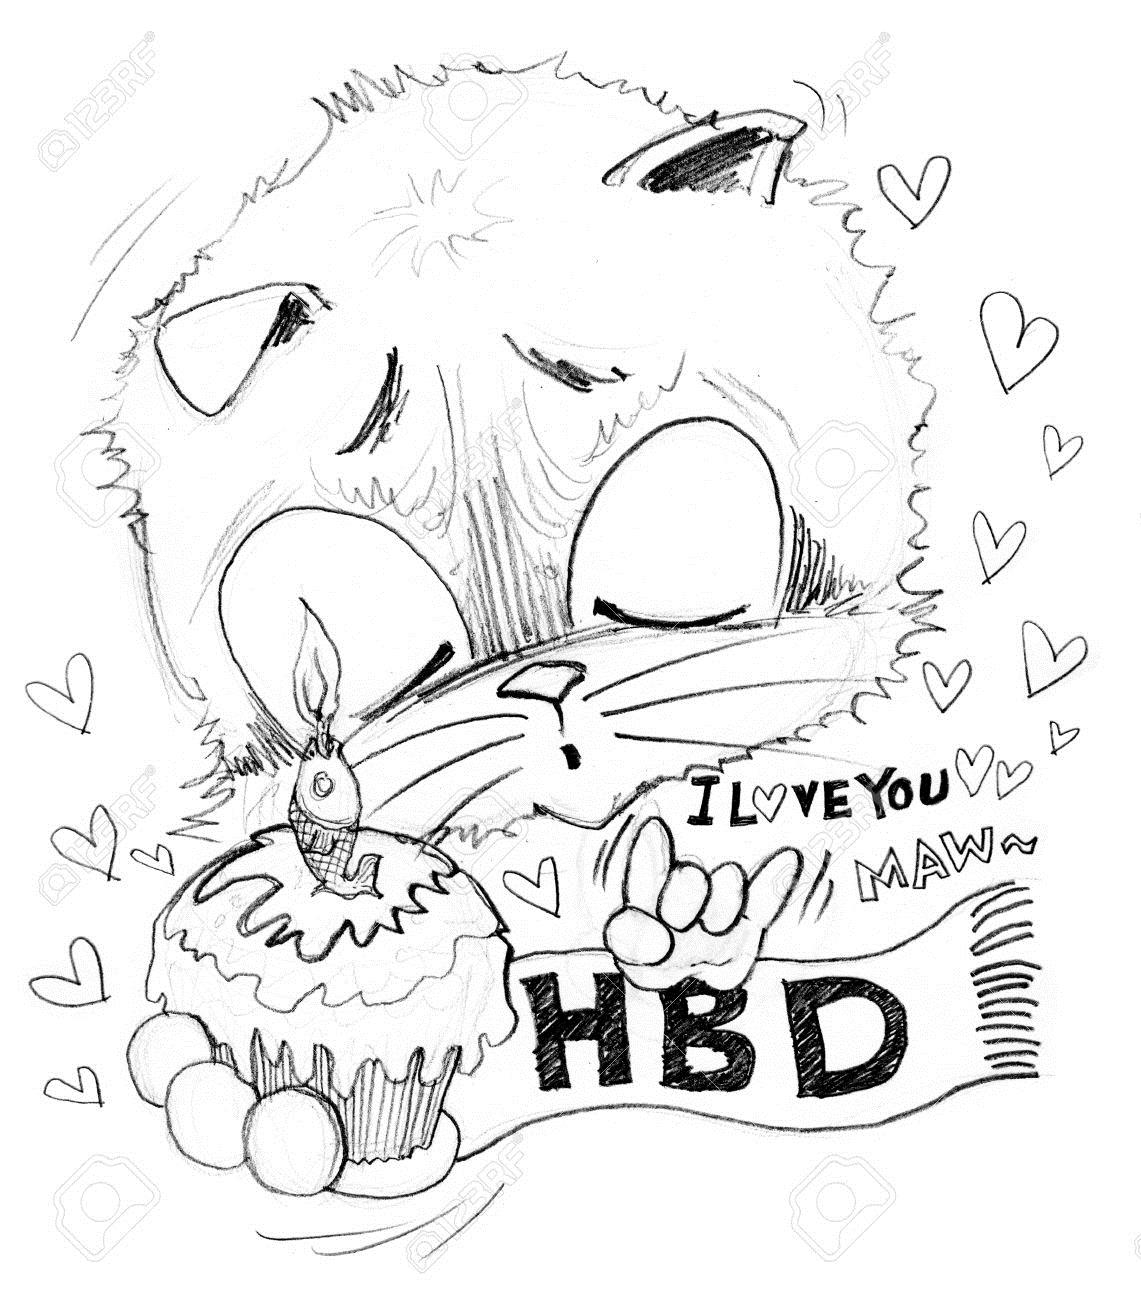 happy birthday pencil drawing ; 73101182-happy-birthday-and-i-love-you-he-surprise-with-girl-friend-very-cute-acting-cat-cartoon-cute-charact-Stock-Photo